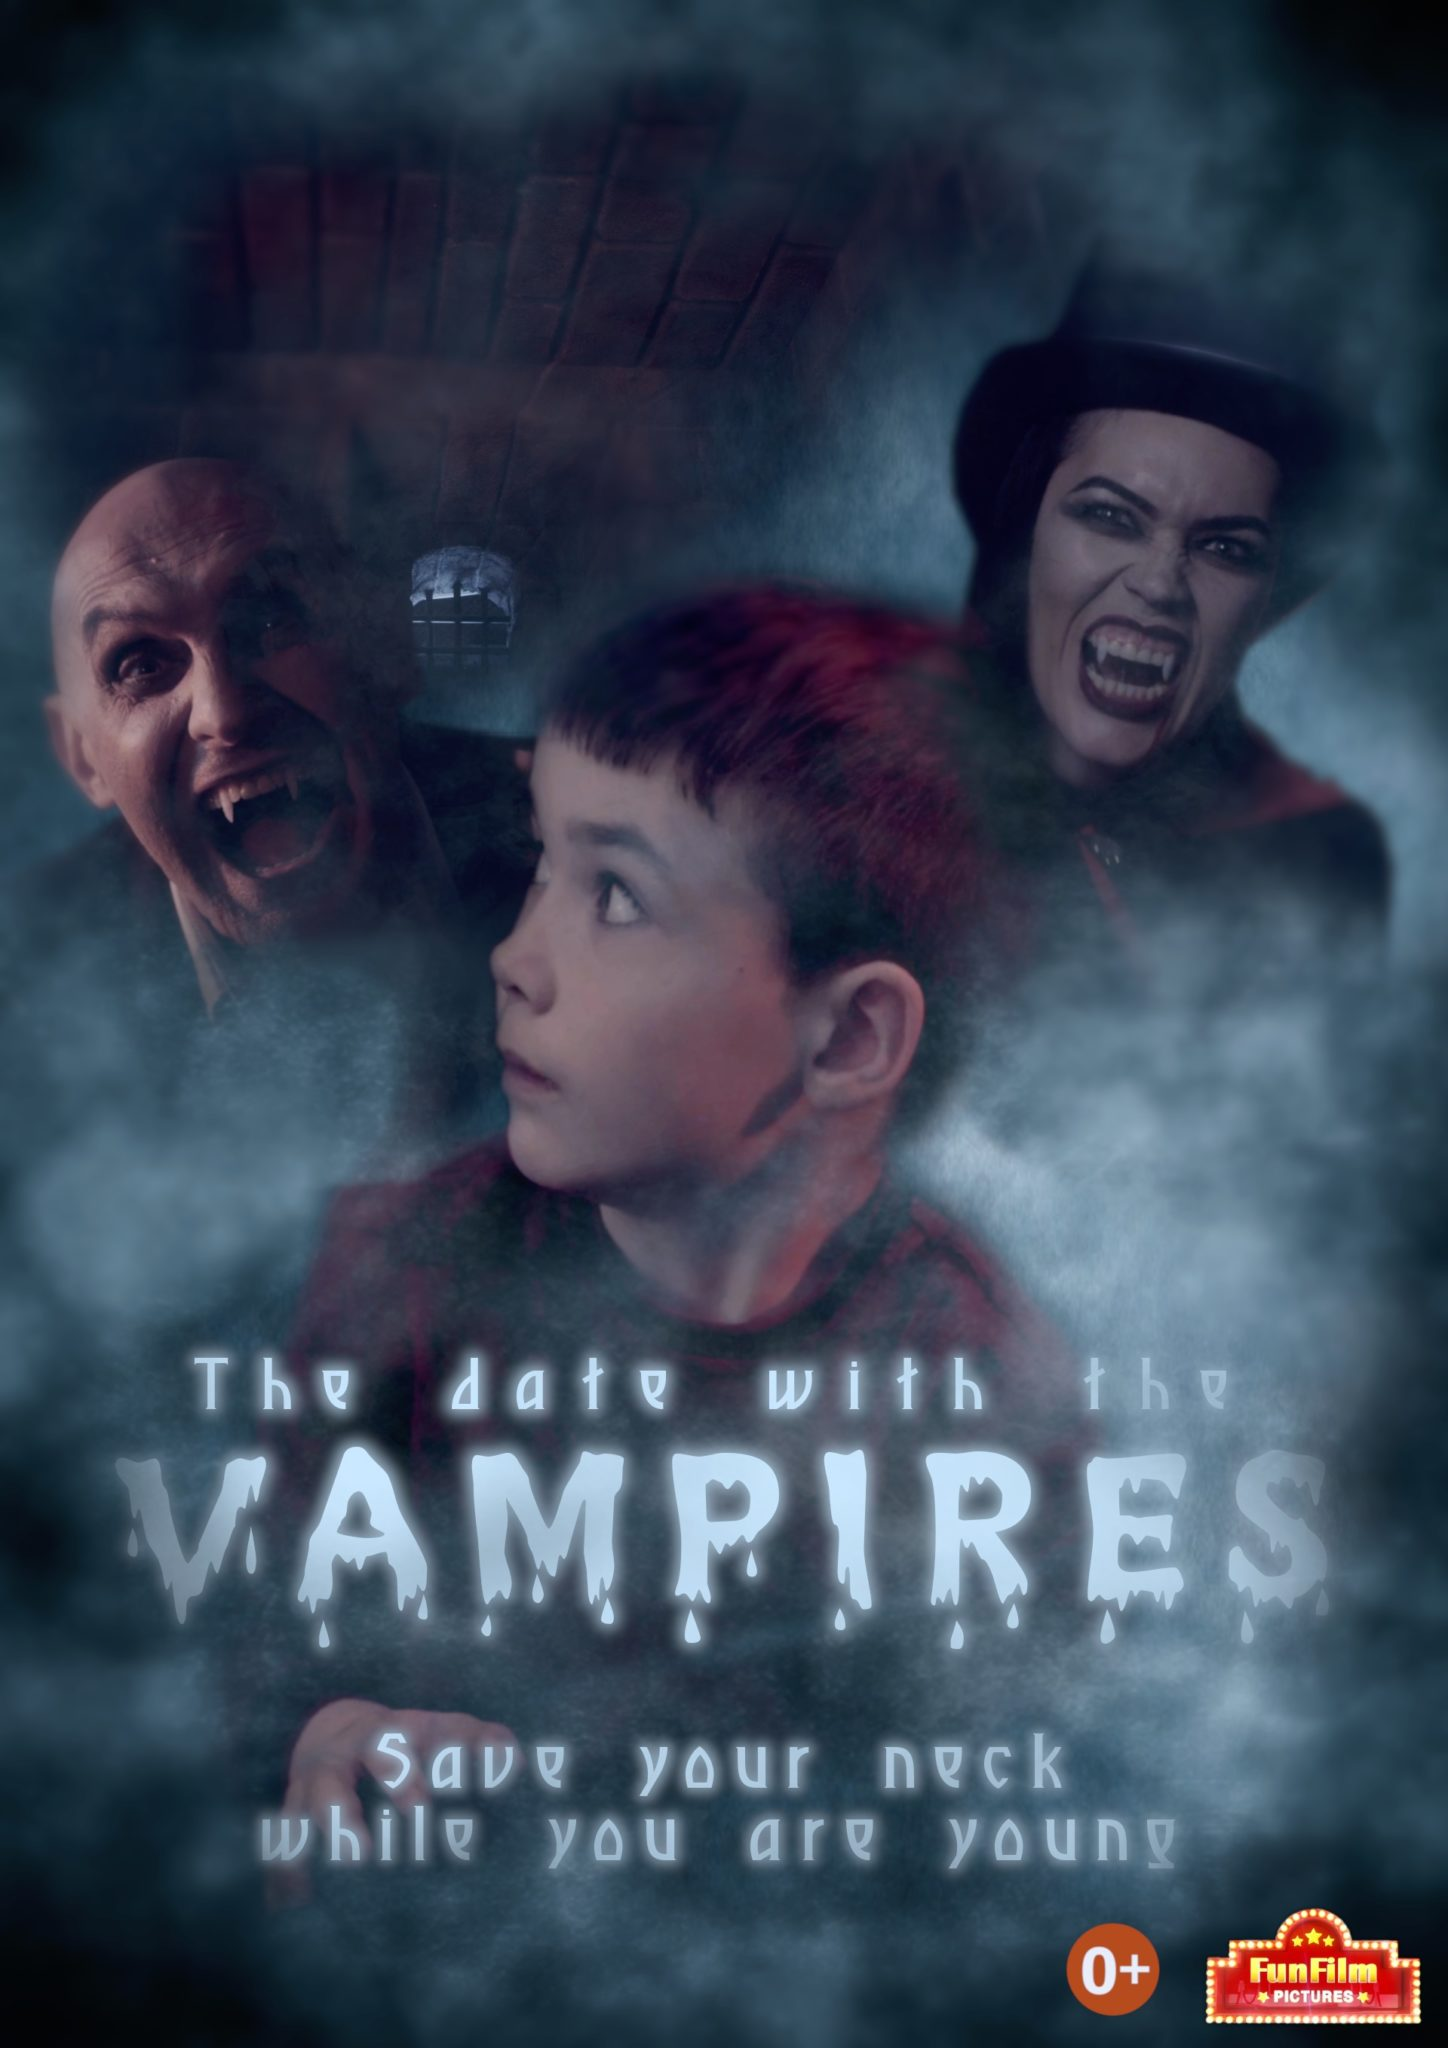 vampire poster platon EN 13 07 18 - The Date with the Vampires